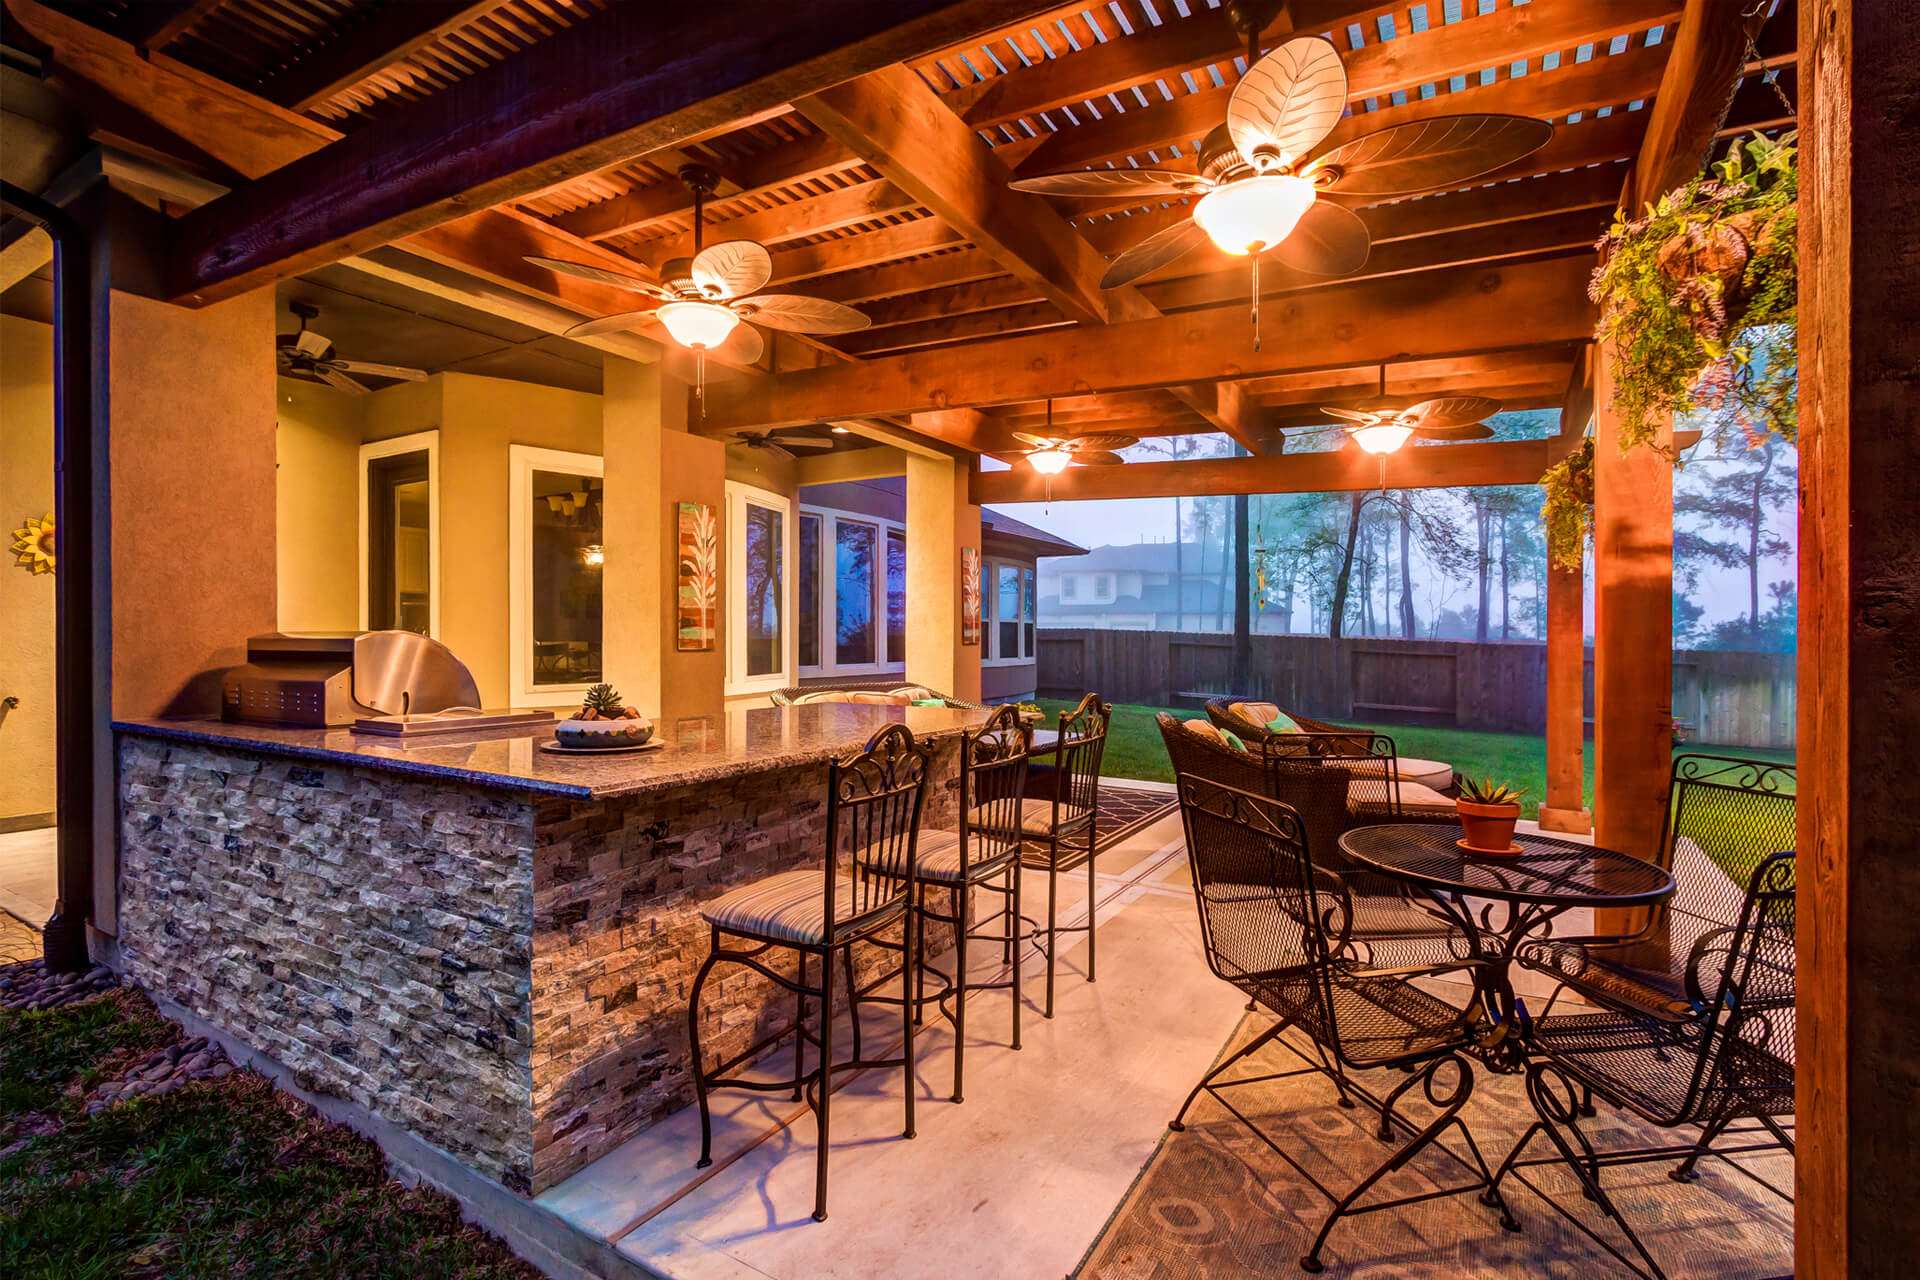 The Crescent Oaks - Custom Outdoor Pergola and custom Kitchen with Granite Countertop in Spring, Texas